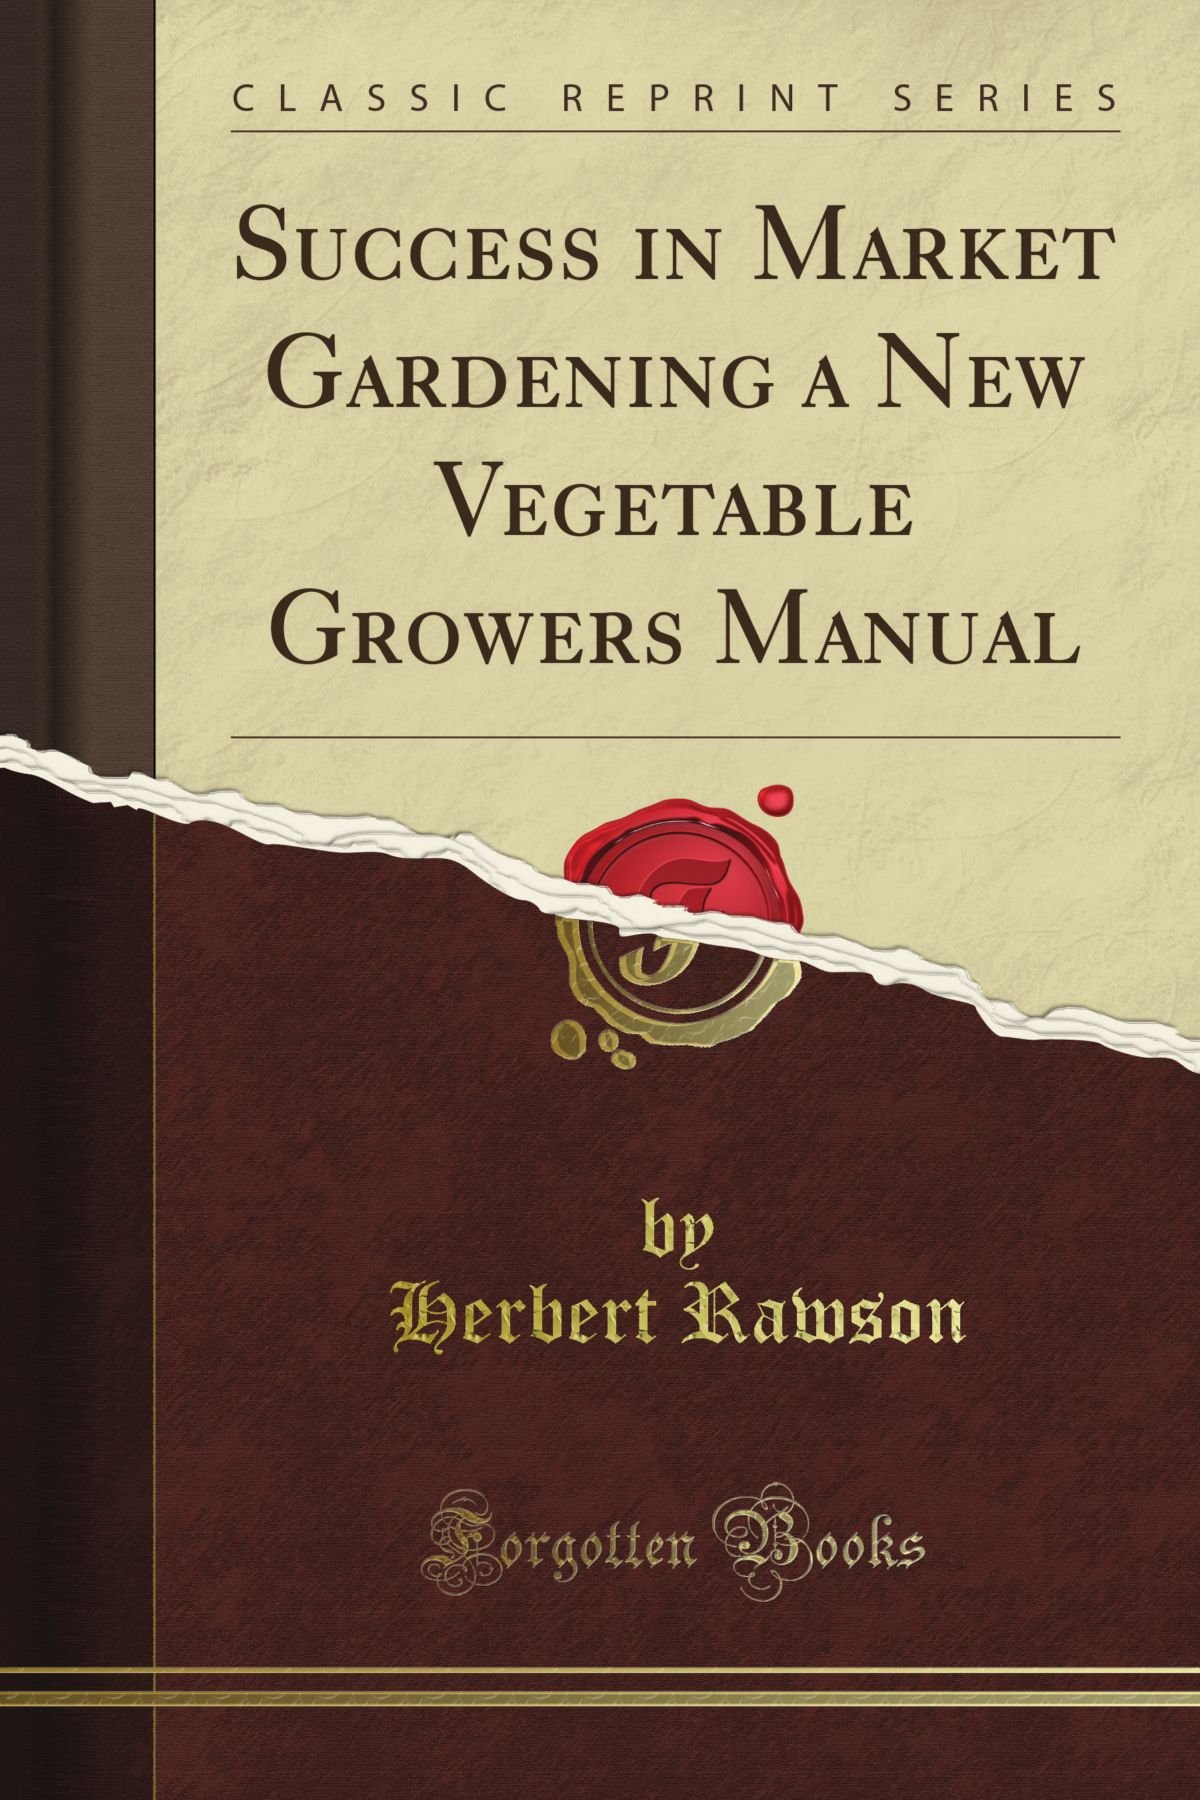 Success in Market Gardening a New Vegetable Growers Manual (Classic Reprint)